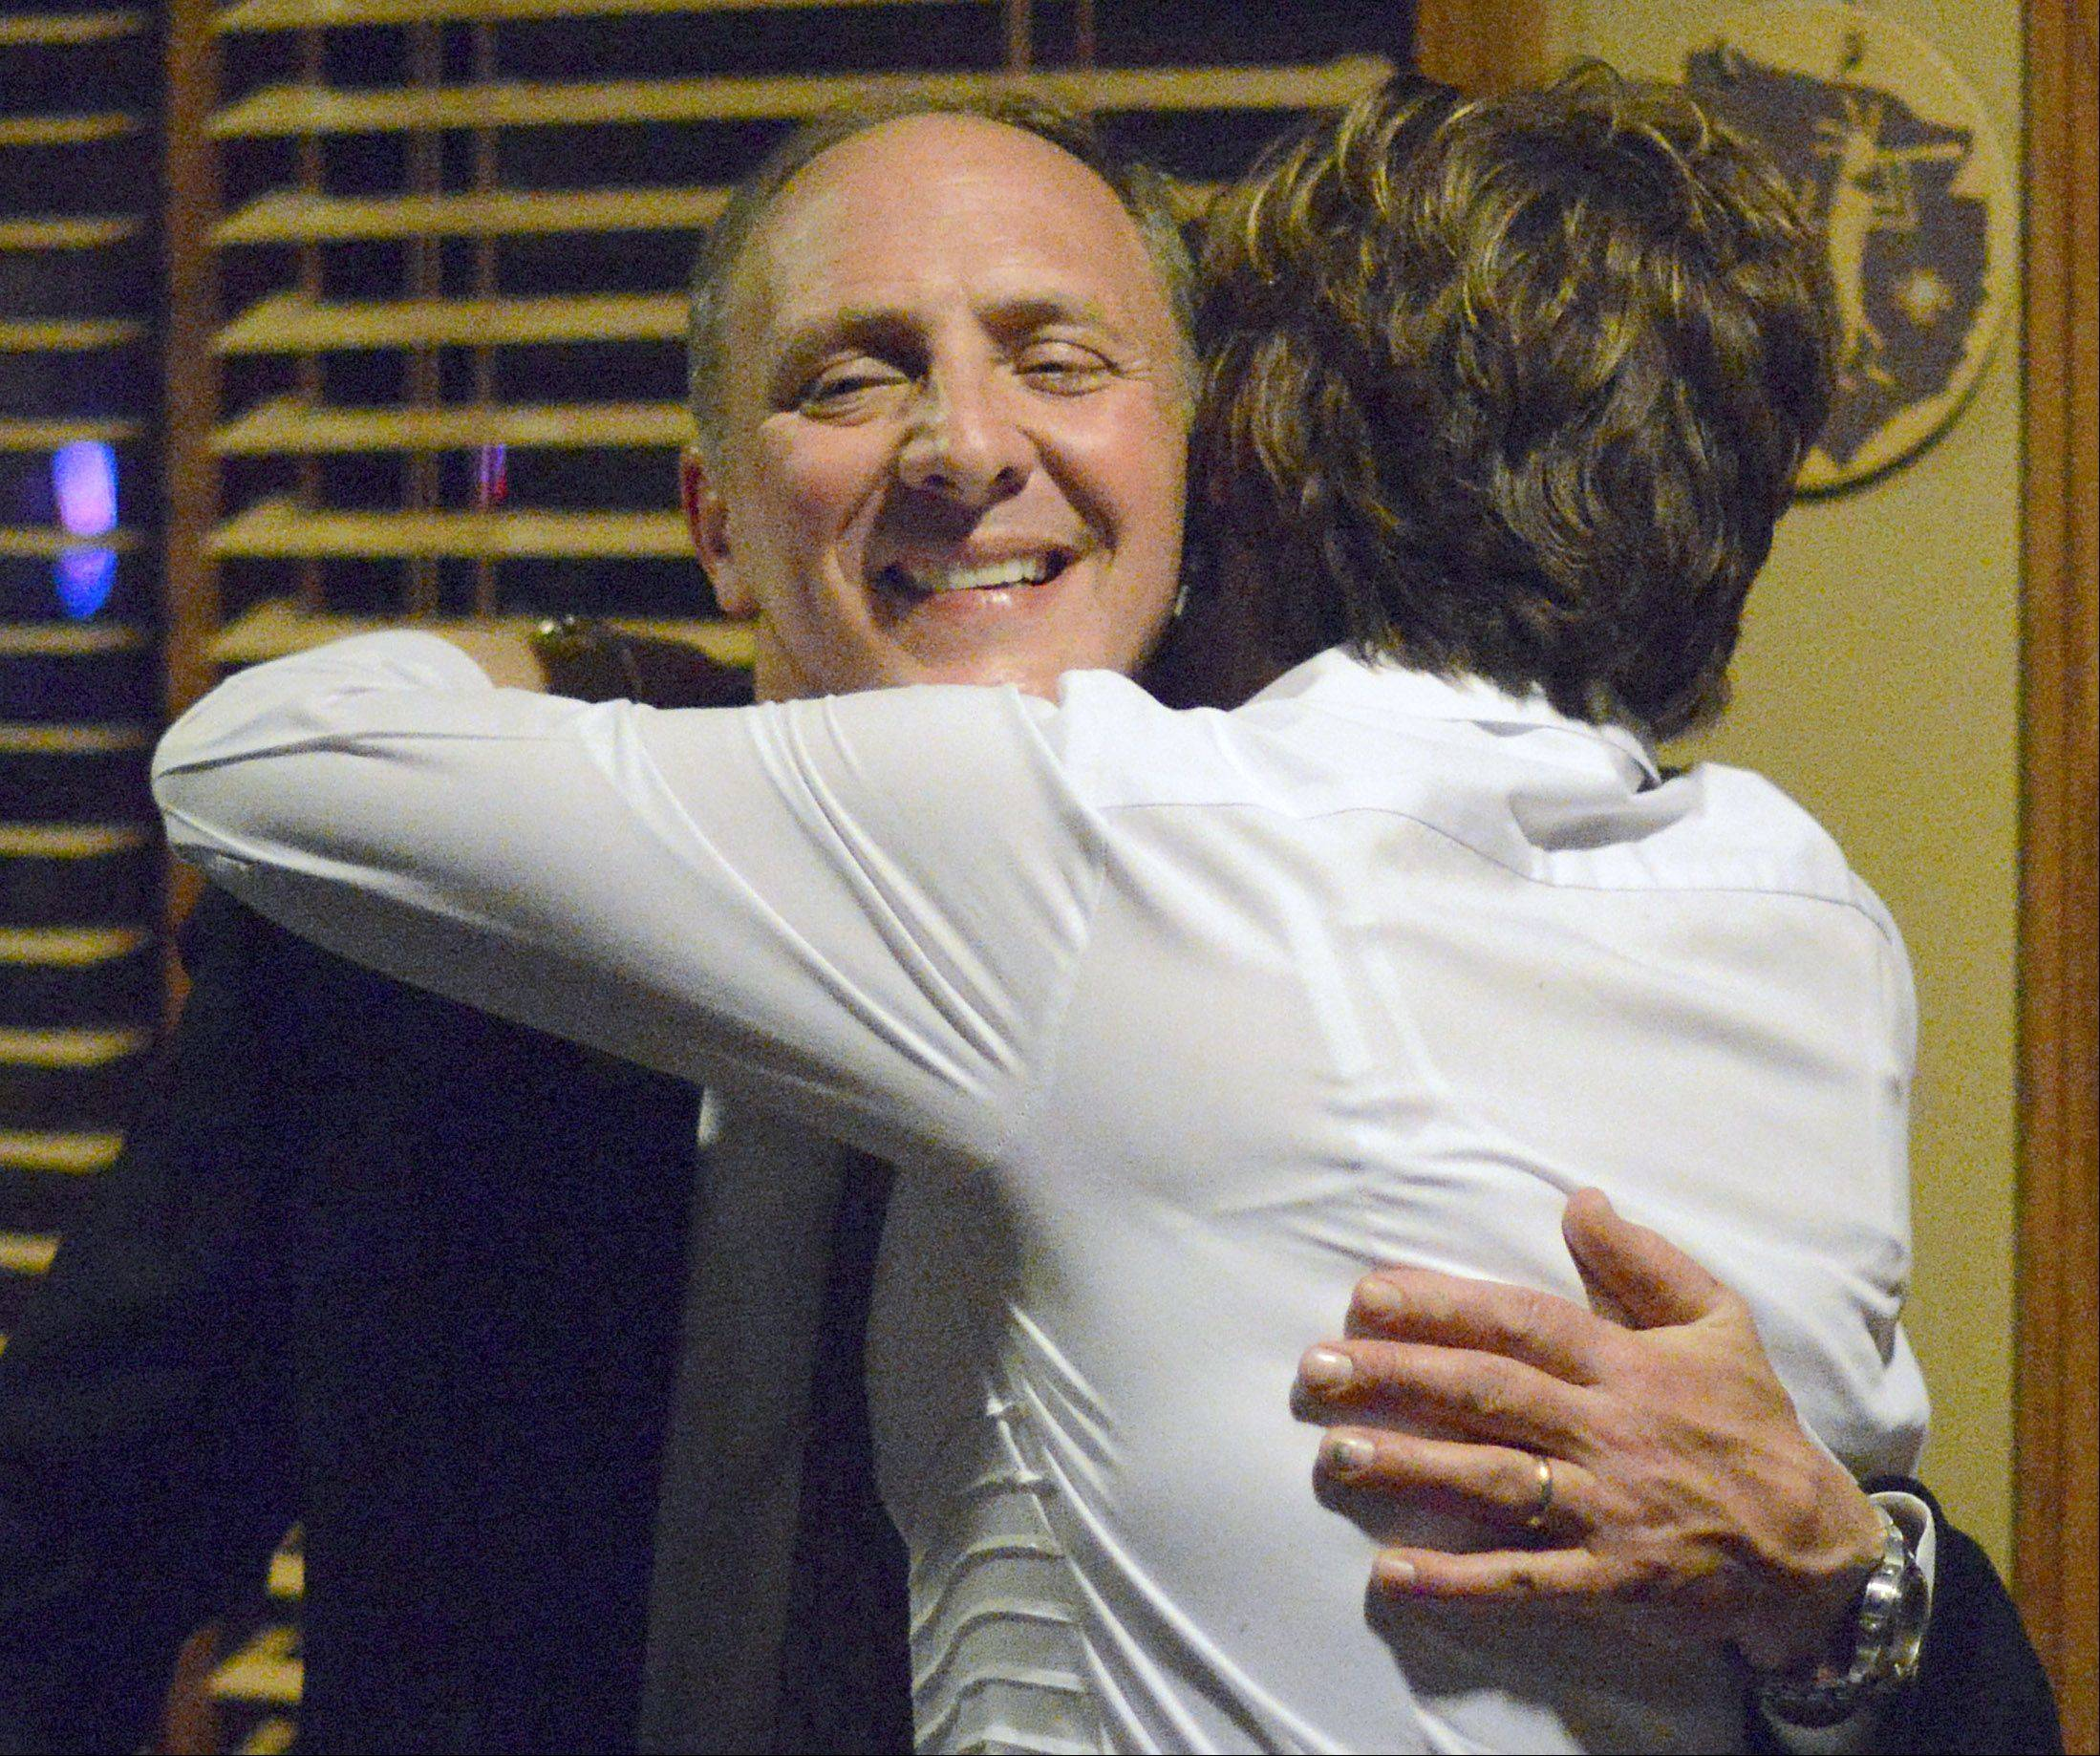 Sugar Grove President Sean Michels gets a congratulatory hug from his wife, Val, after the final results arrive at his election night party at the Open Range Southwest Grill in Sugar Grove.